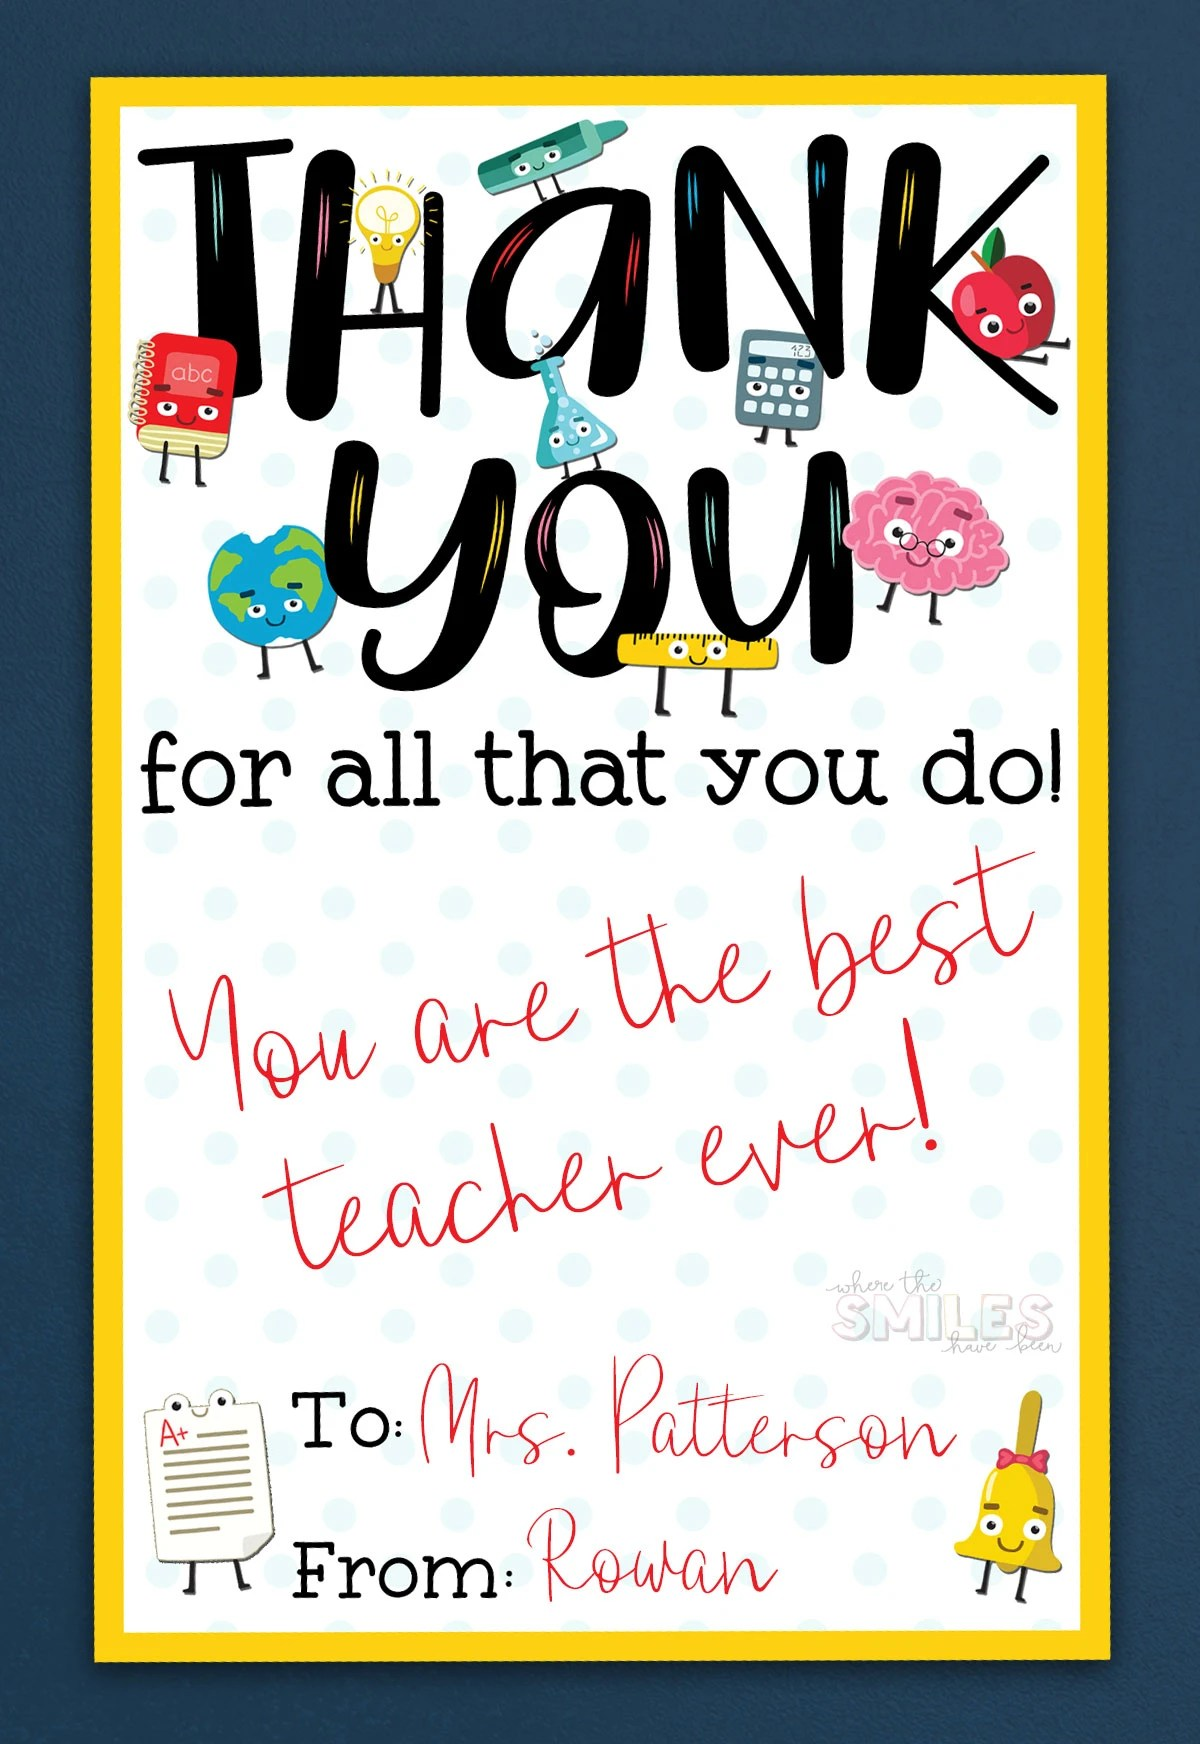 photograph regarding Printable Thank You Cards for Teacher called Free of charge Trainer Appreciation Thank On your own Printable - 2 Products!